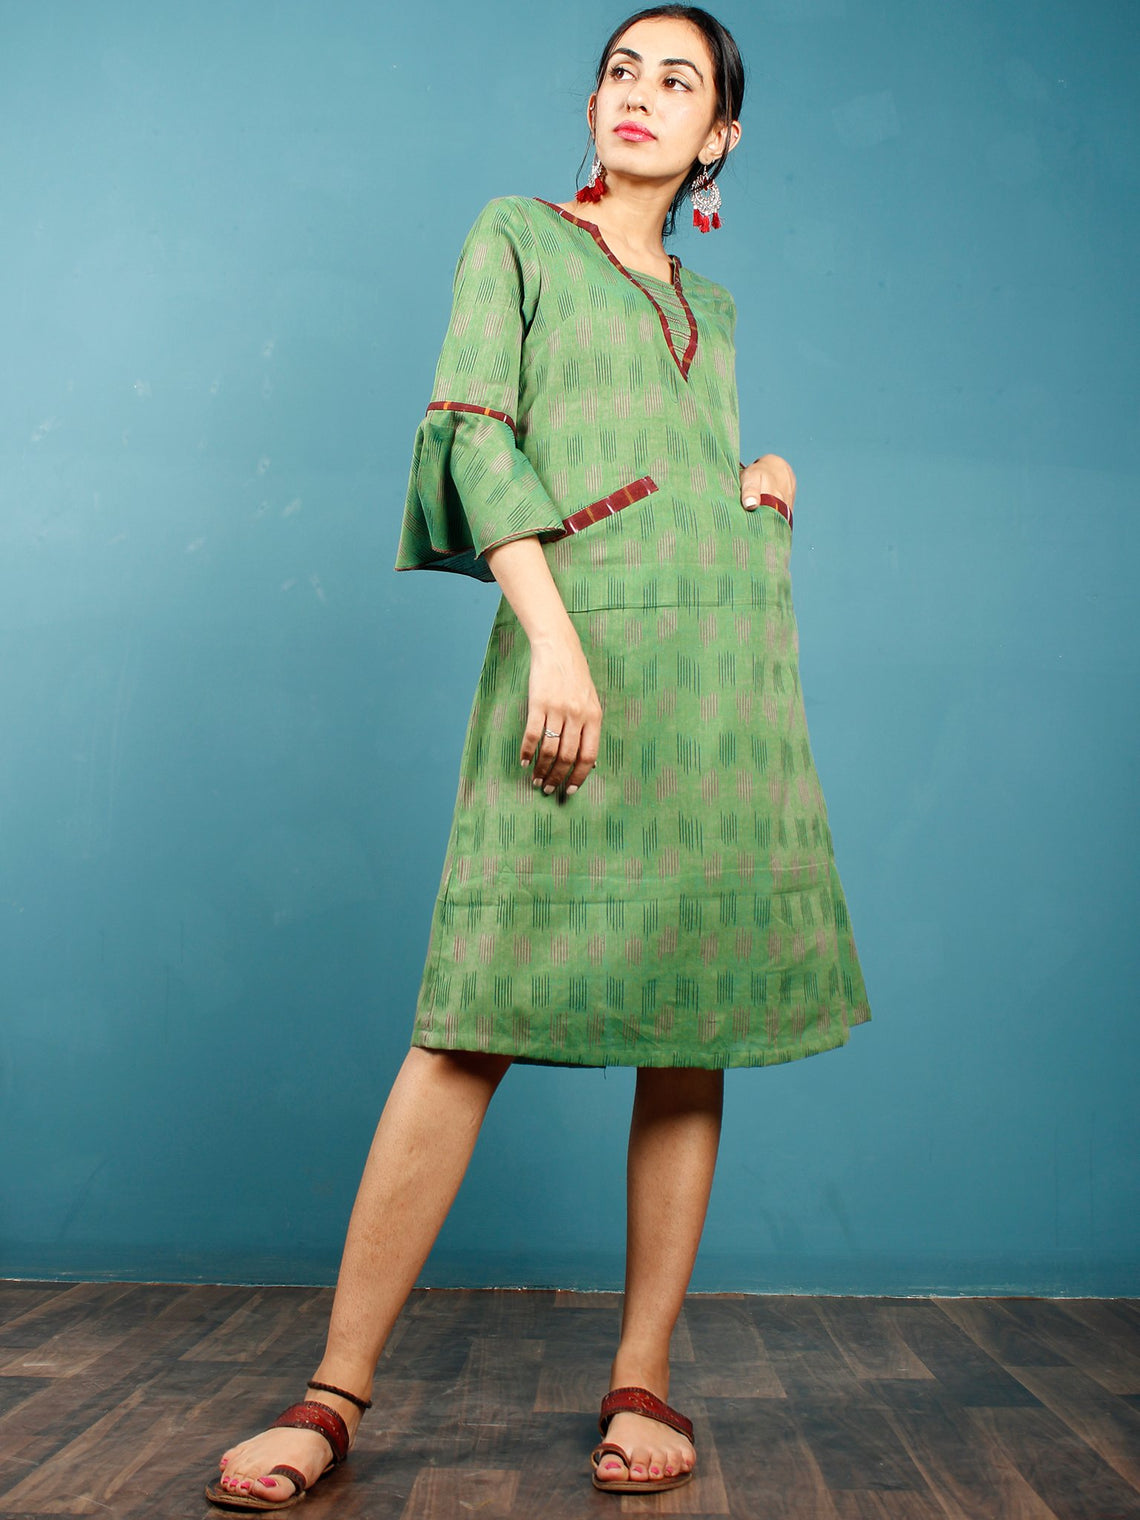 Green Maroon Ikat Handwoven Cotton Tunic Dress With Pockets And Bell Sleeves - D261F1232